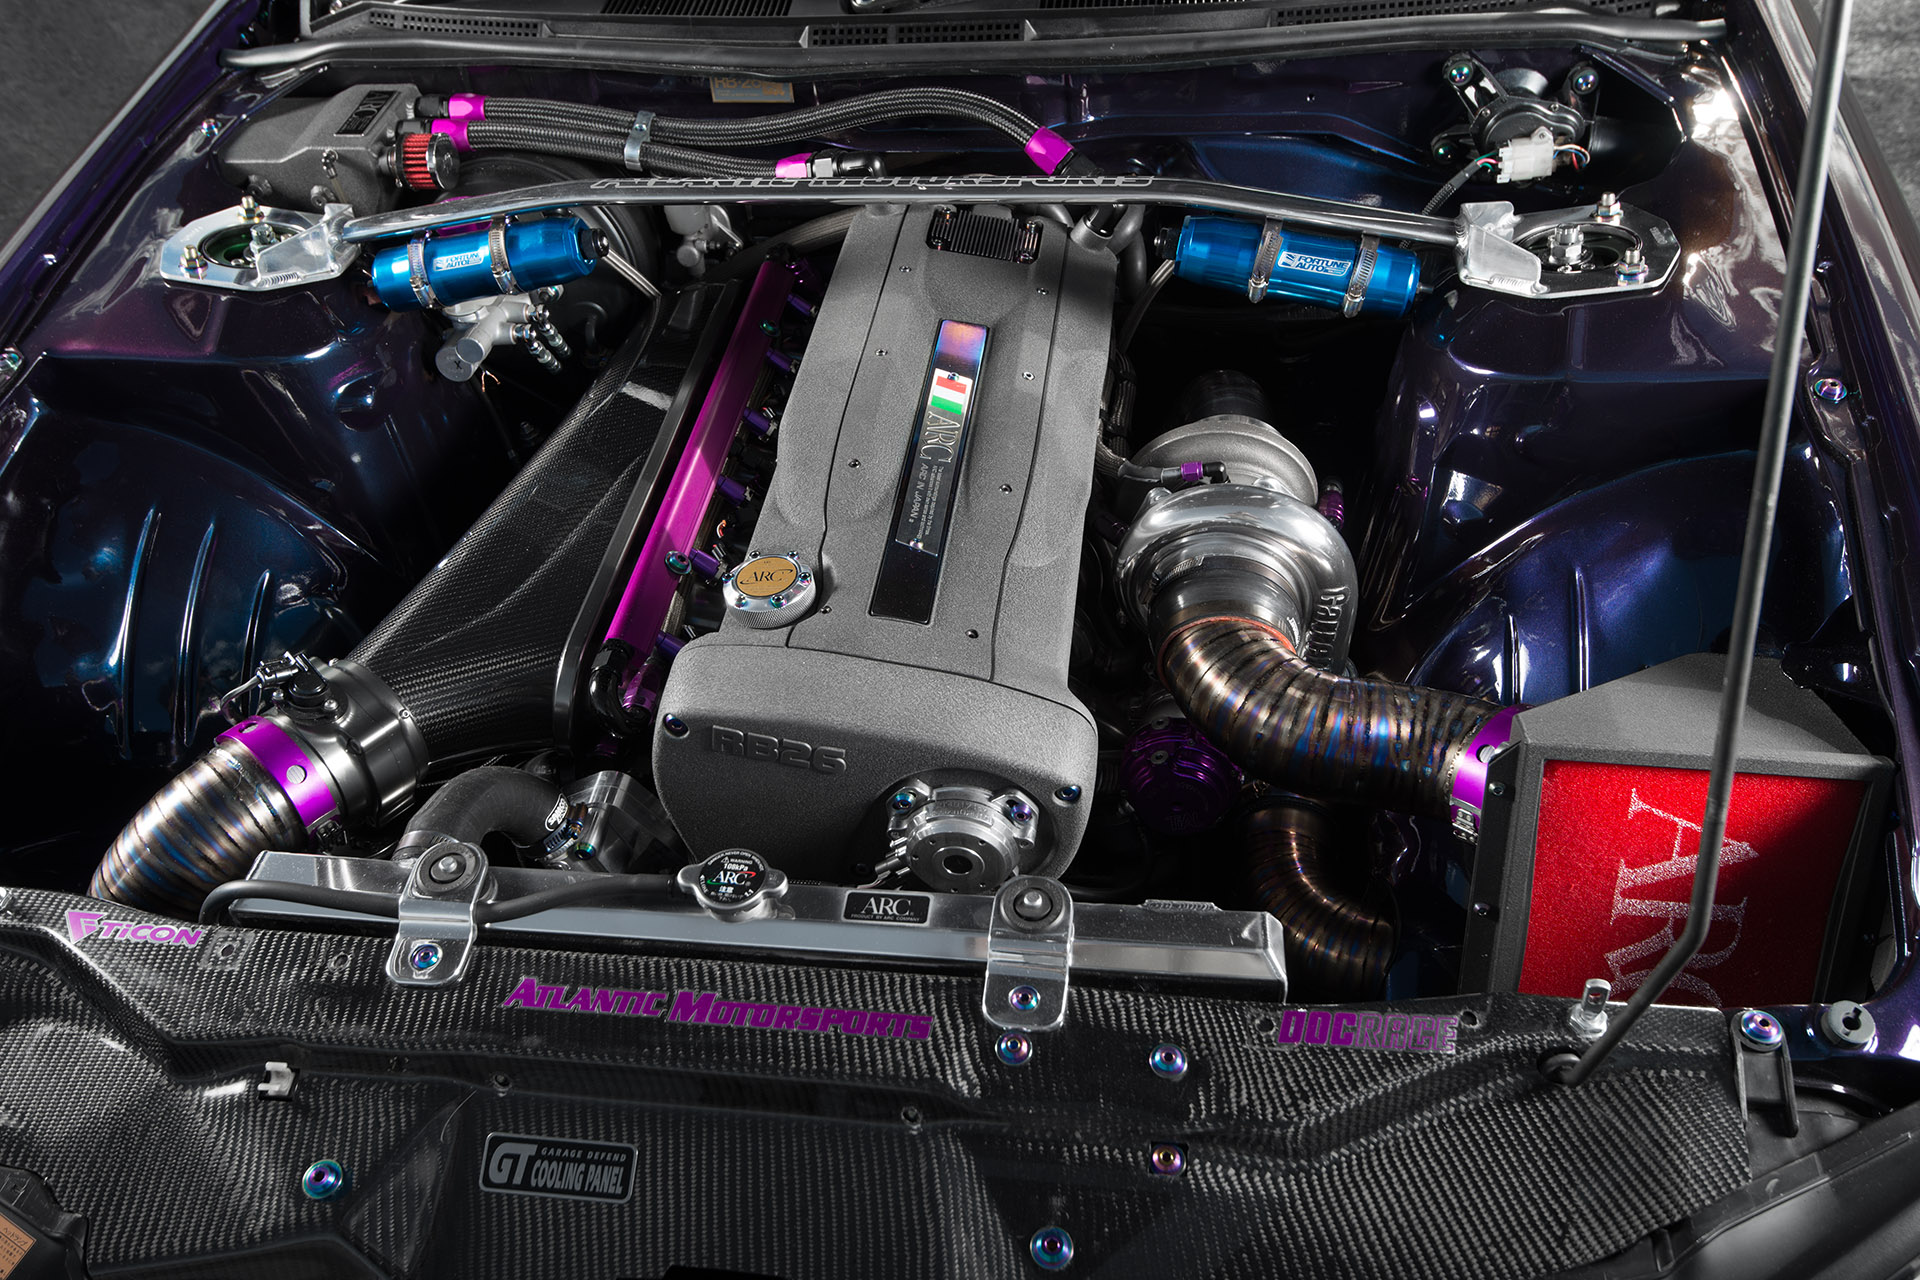 Nissan RB26DETT engine swap in Midnight Purple III S15 Silvia Super Street magazine engine bay automotive photography